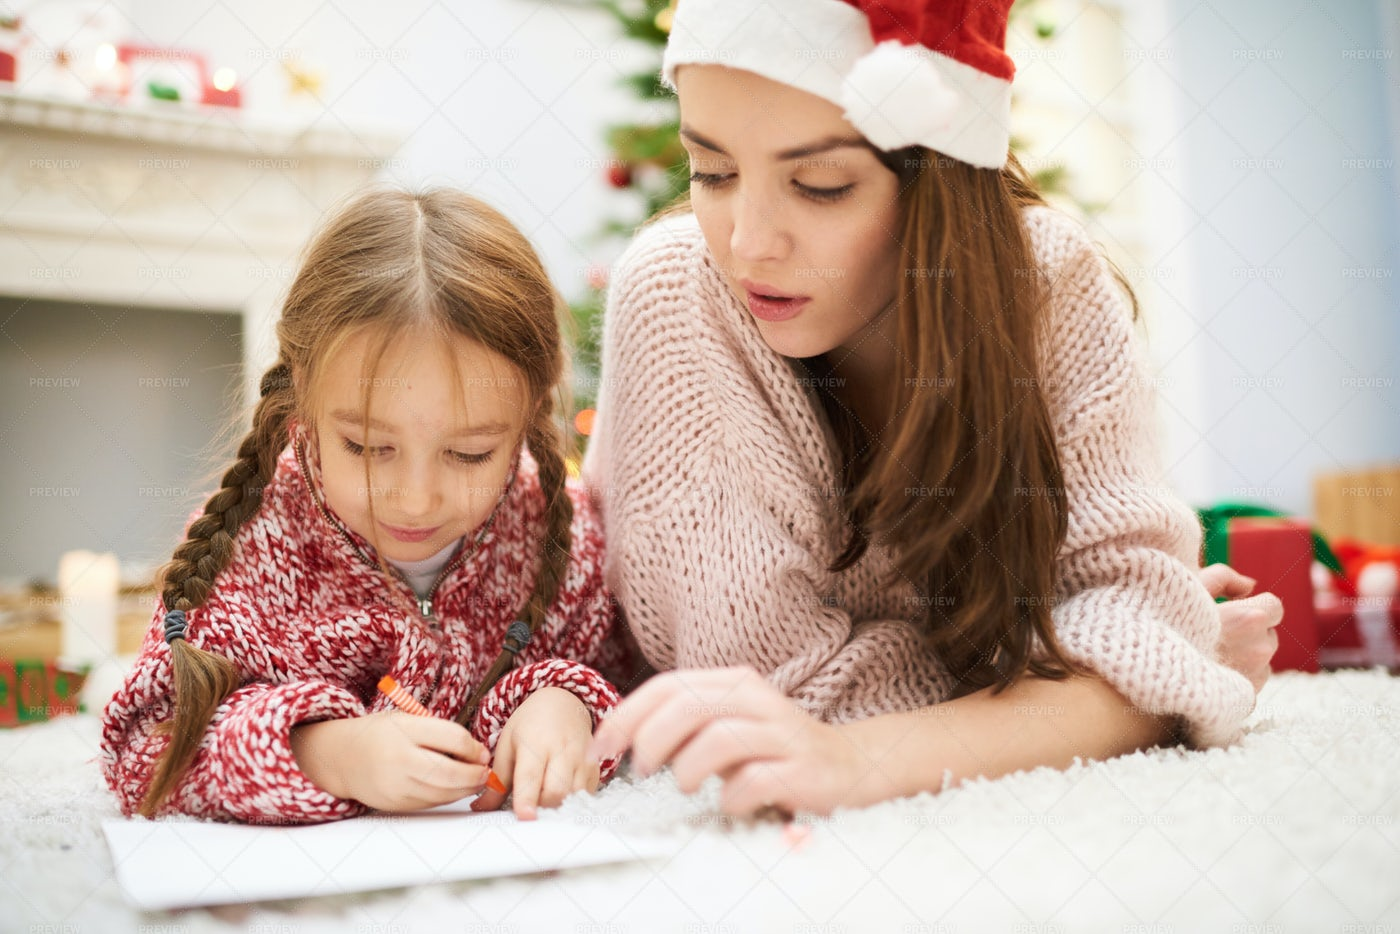 Helping Little Daughter With...: Stock Photos